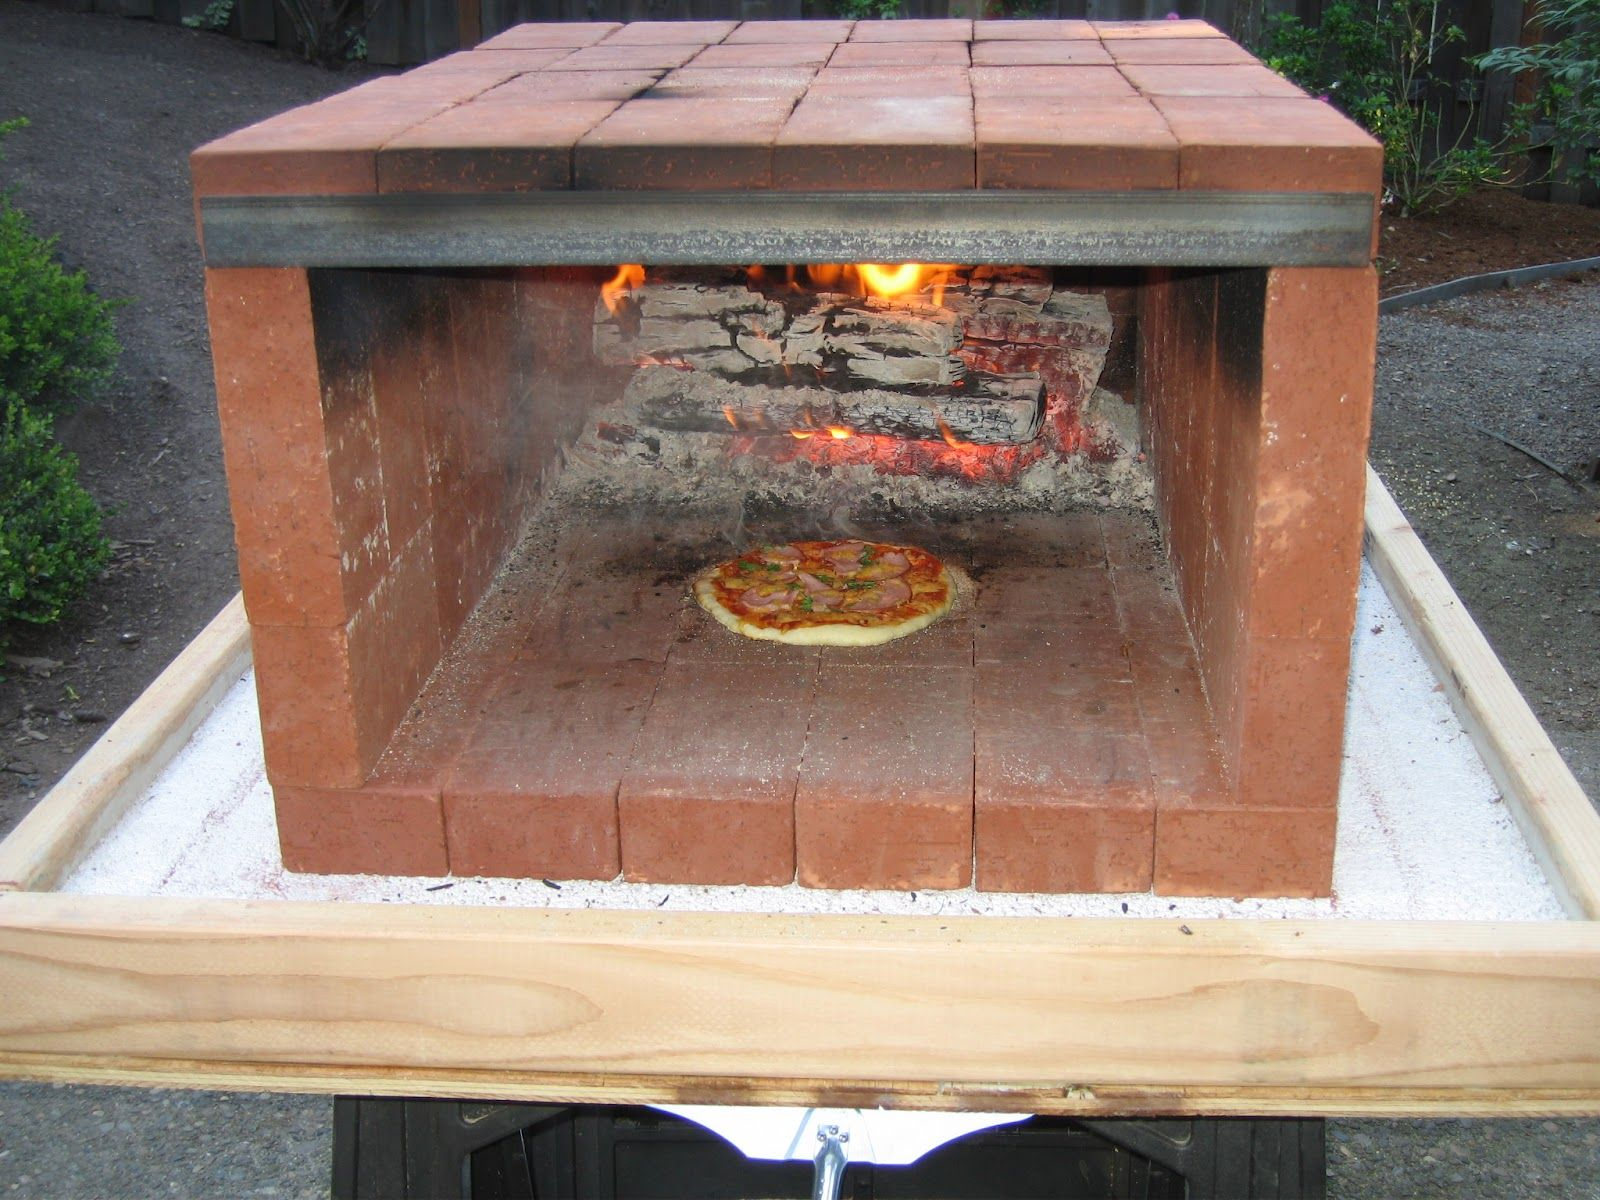 Brickwood ovens is the only brand of pizza oven kits we